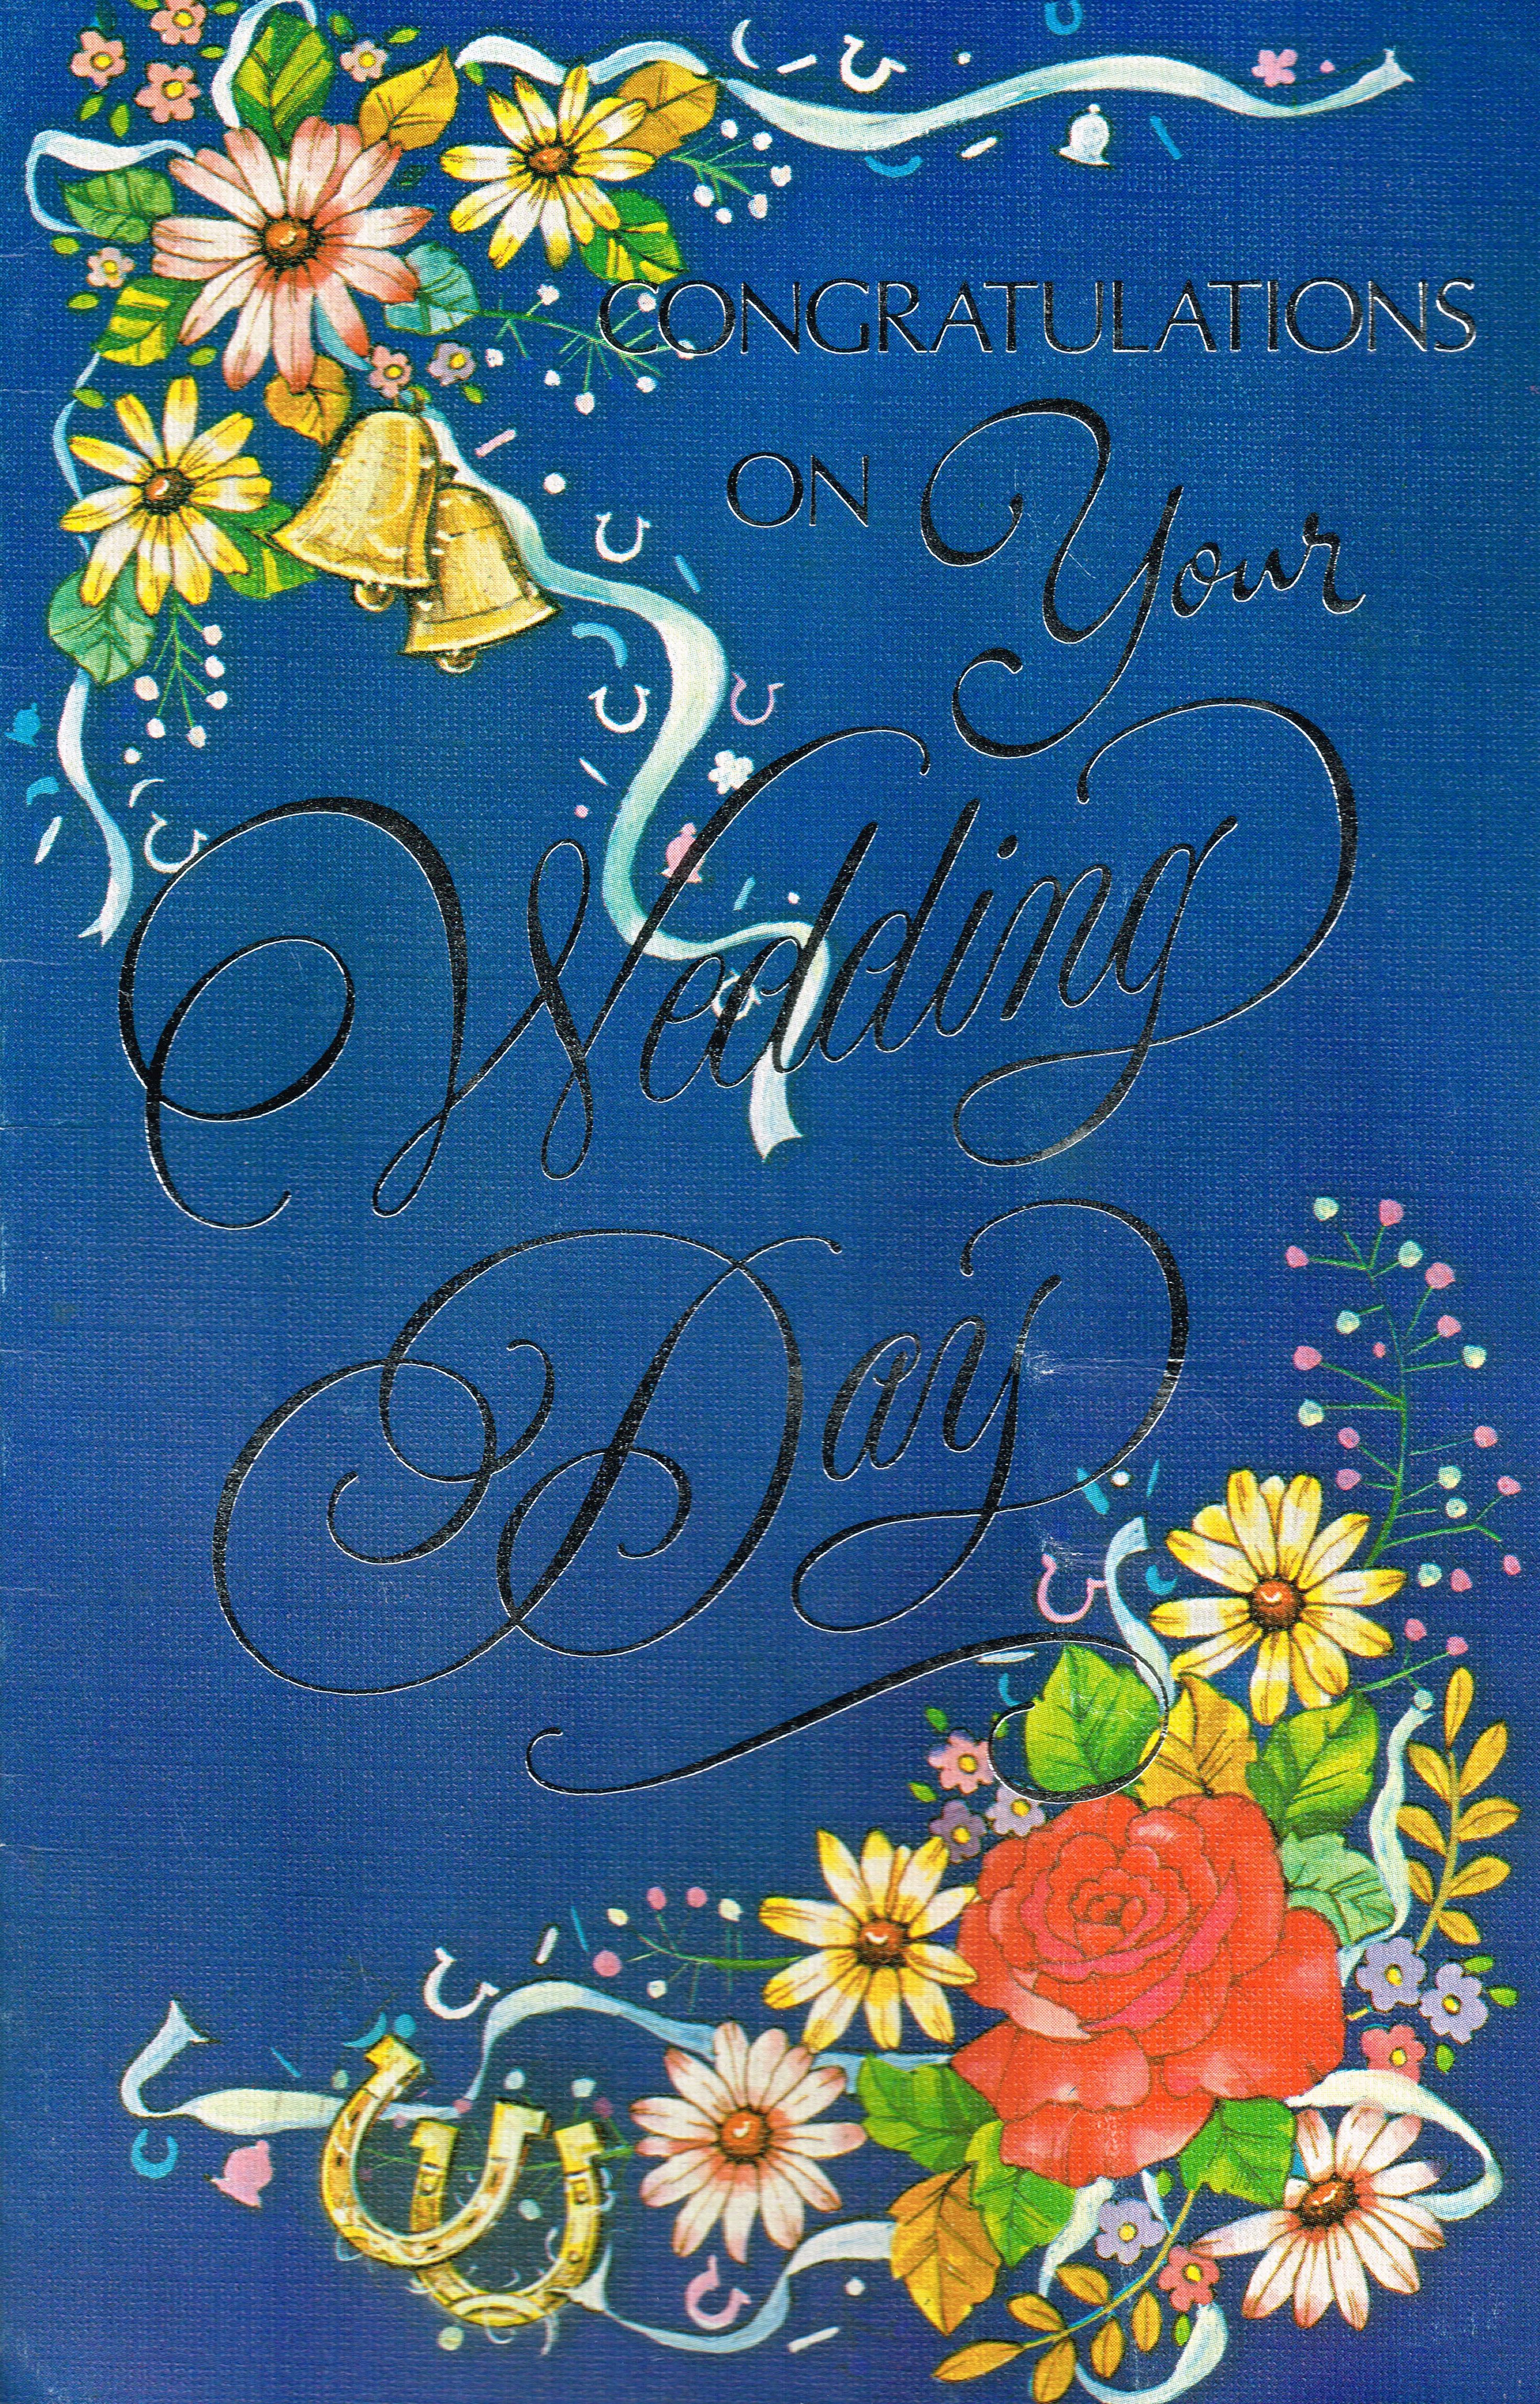 Congratulations on your wedding day vintage card